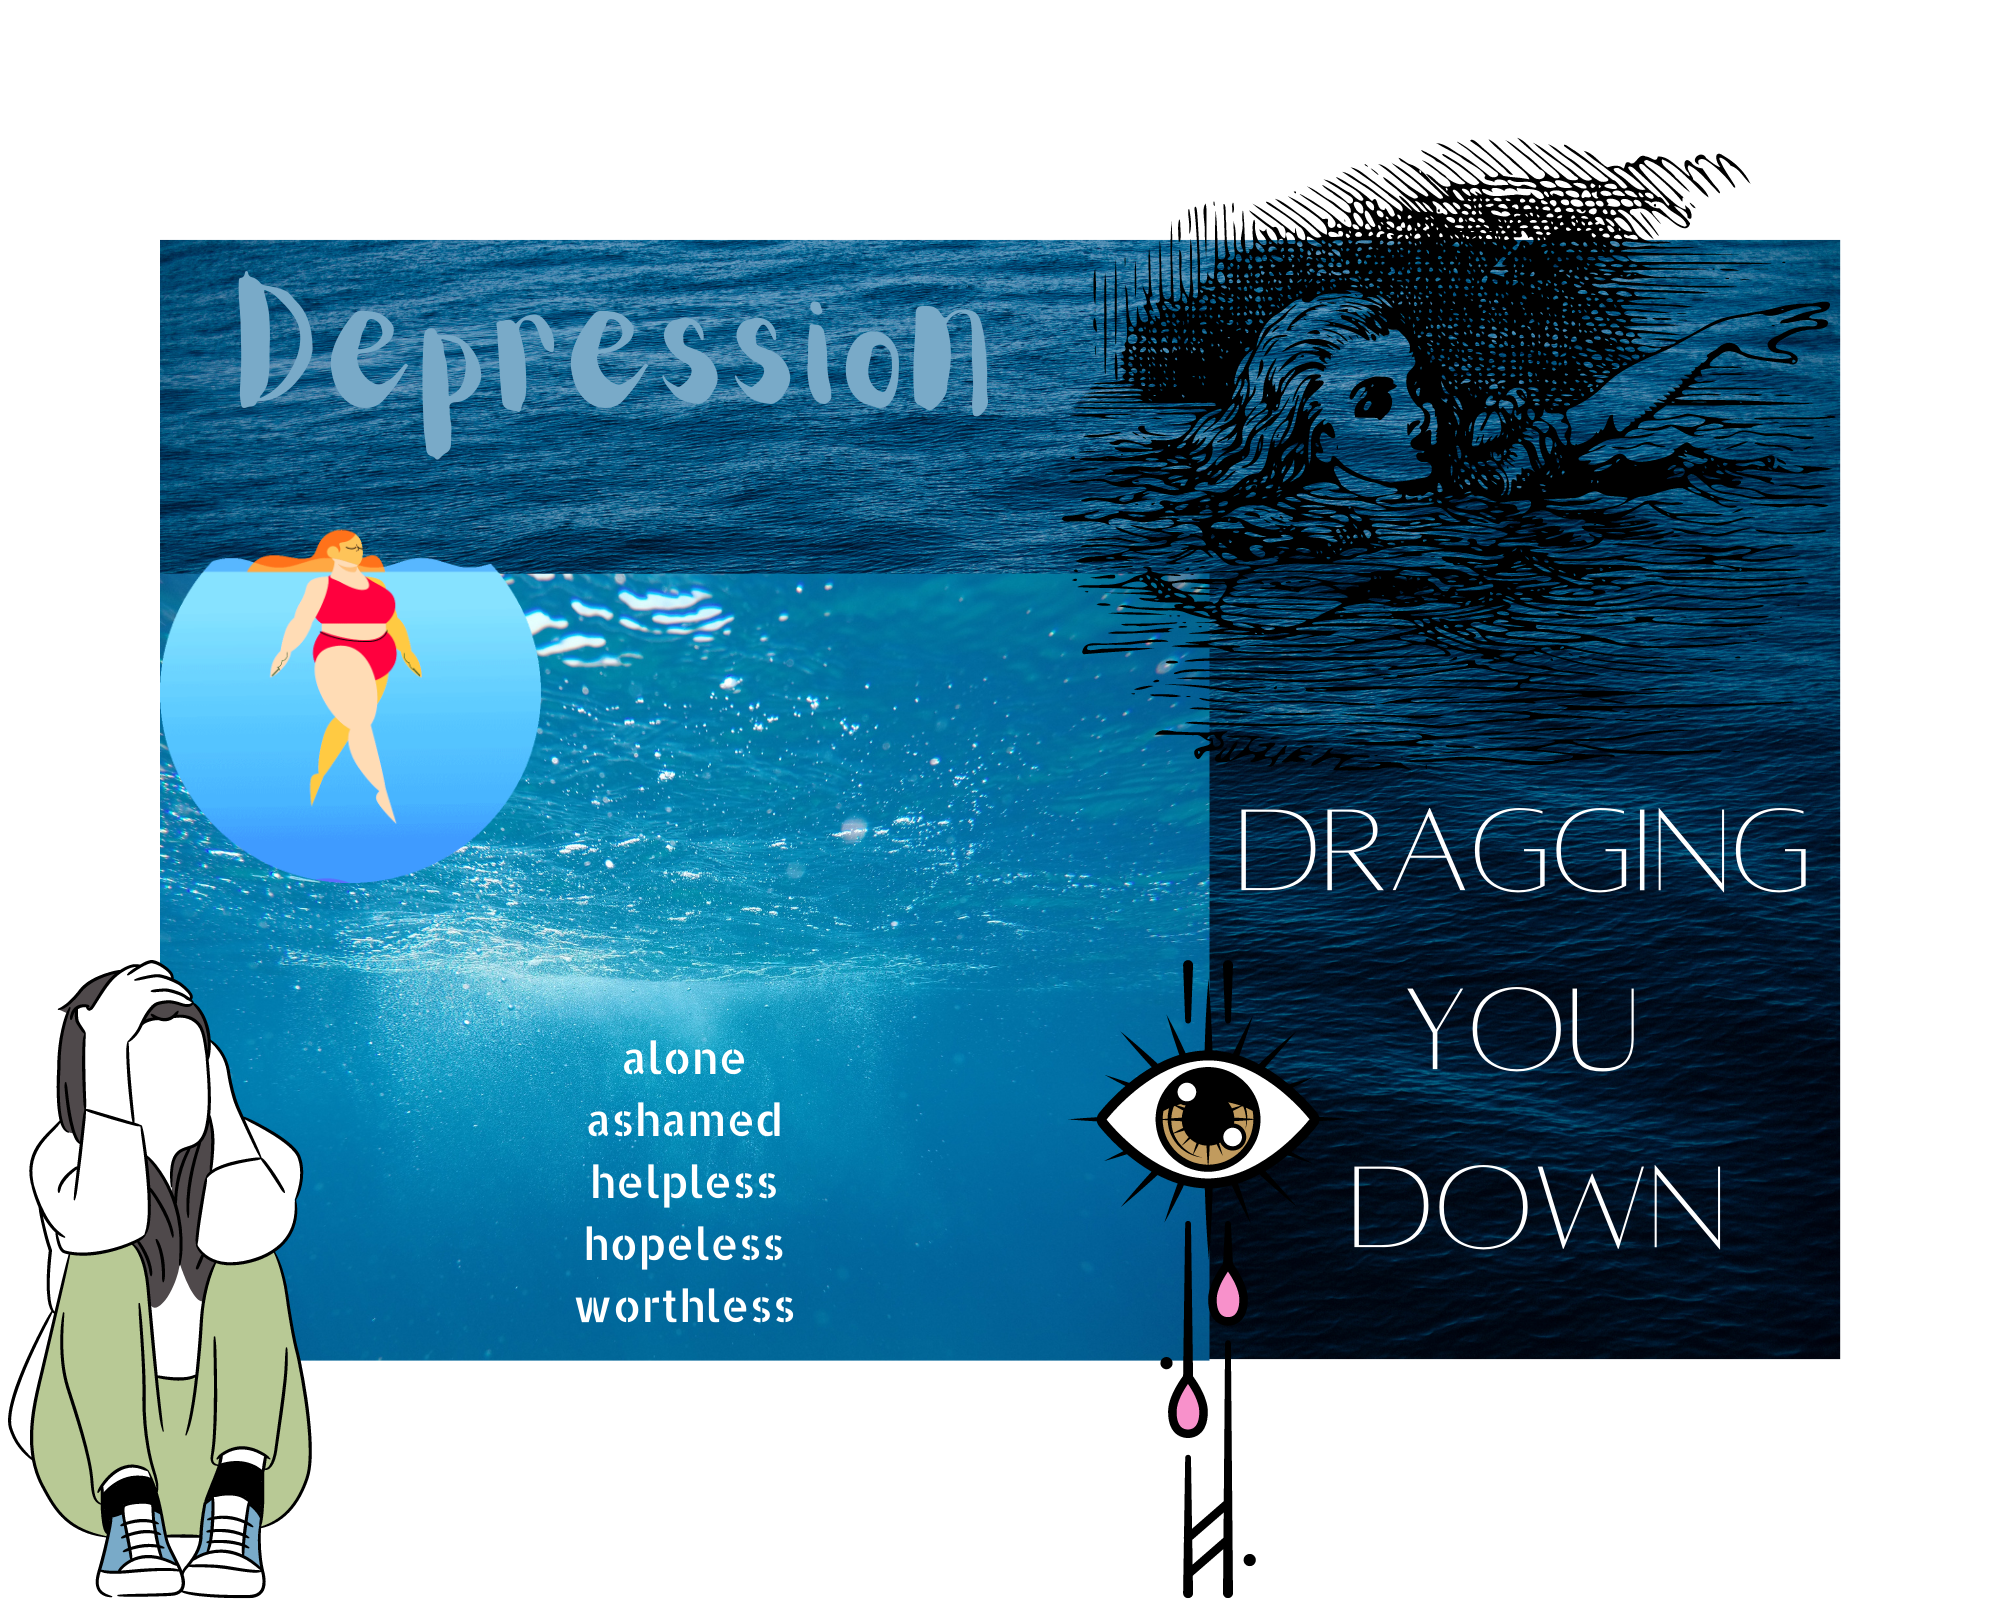 Depression. Dragging you down.